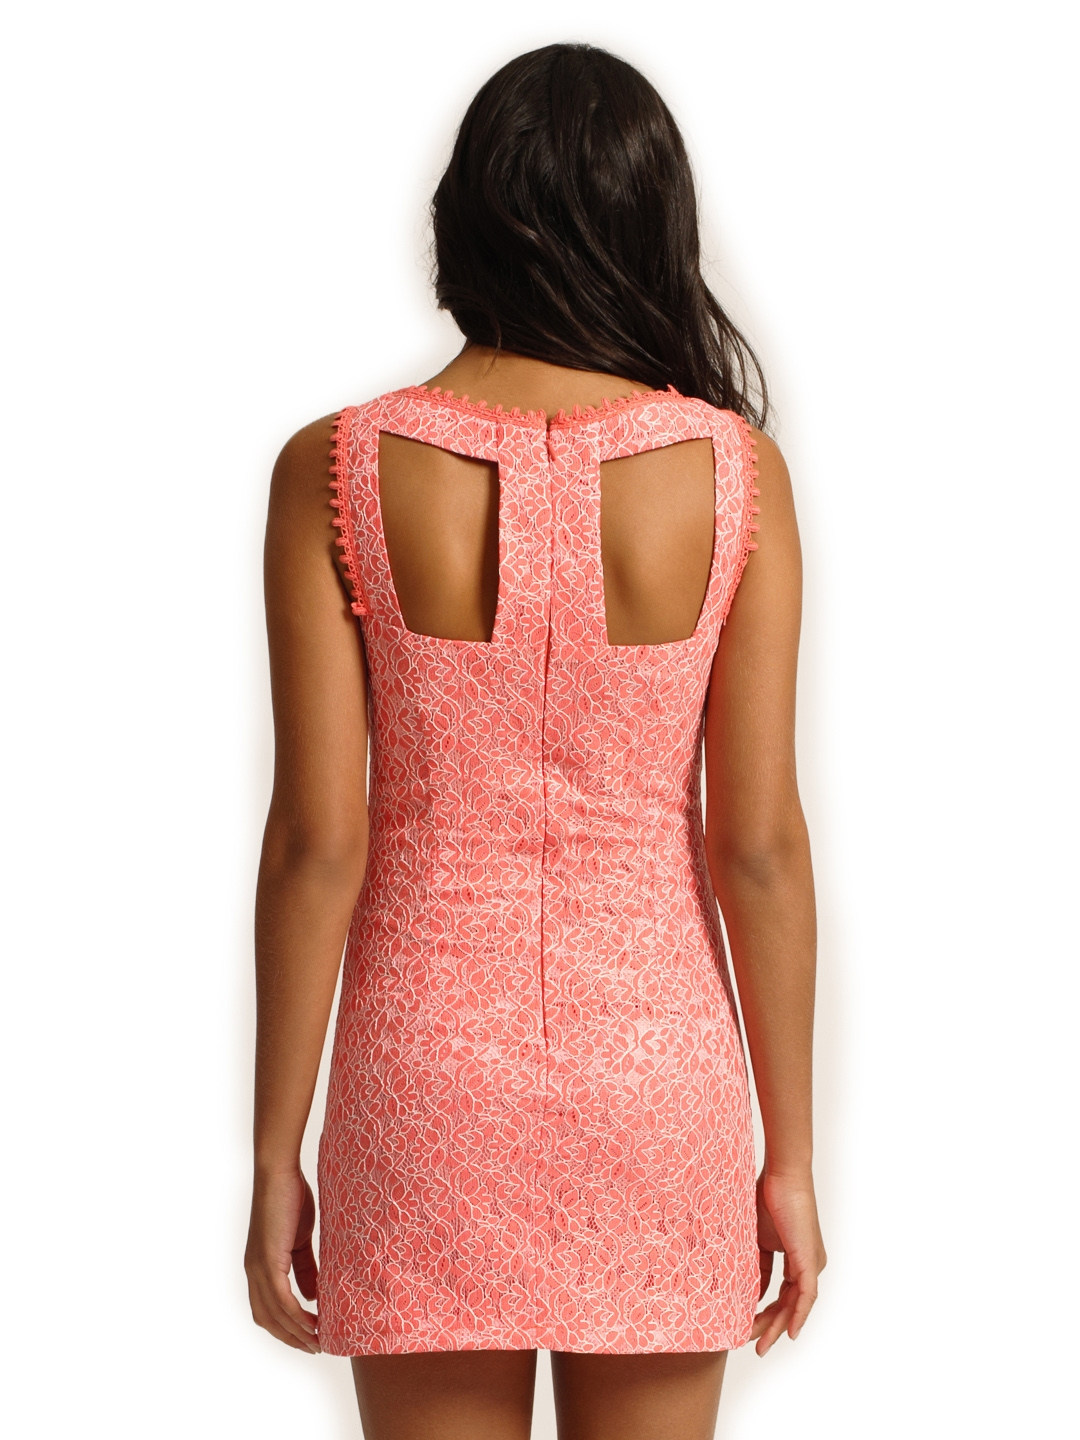 4589dc10572e Buy Little Mistress Coral Pink Lace Bodycon Dress - Dresses for ...